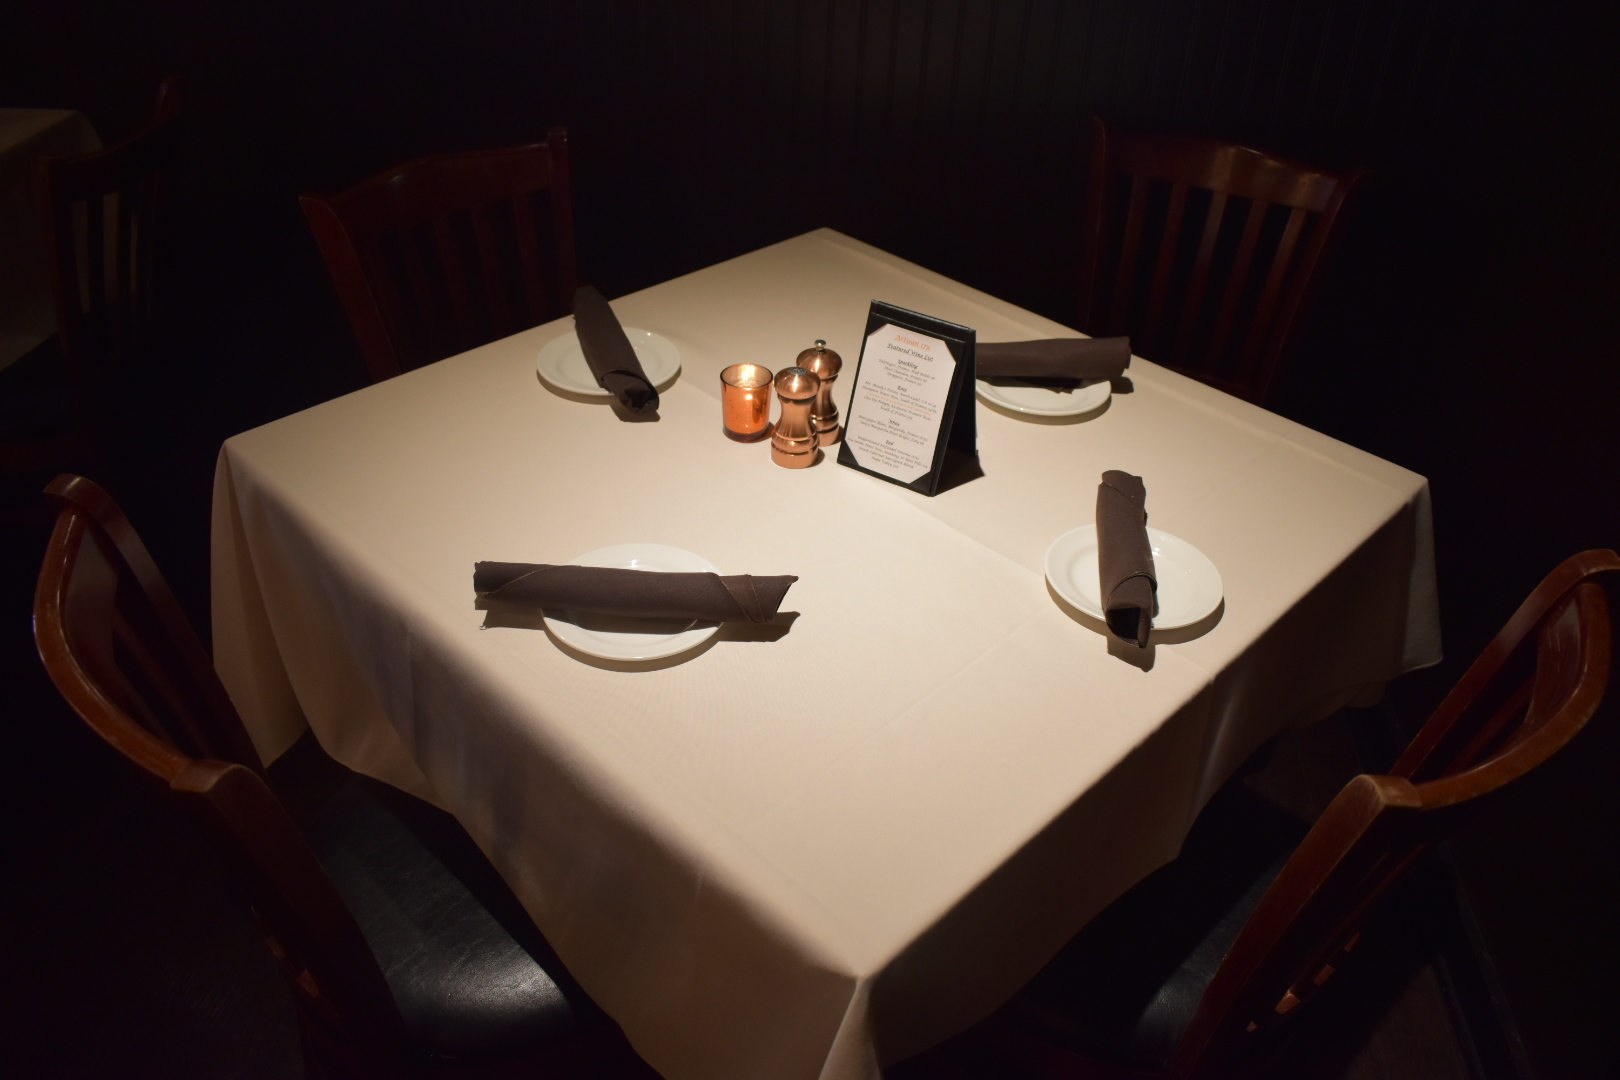 linen-covered table with plates and silverware with menu shakers and candle on table with dark ambience